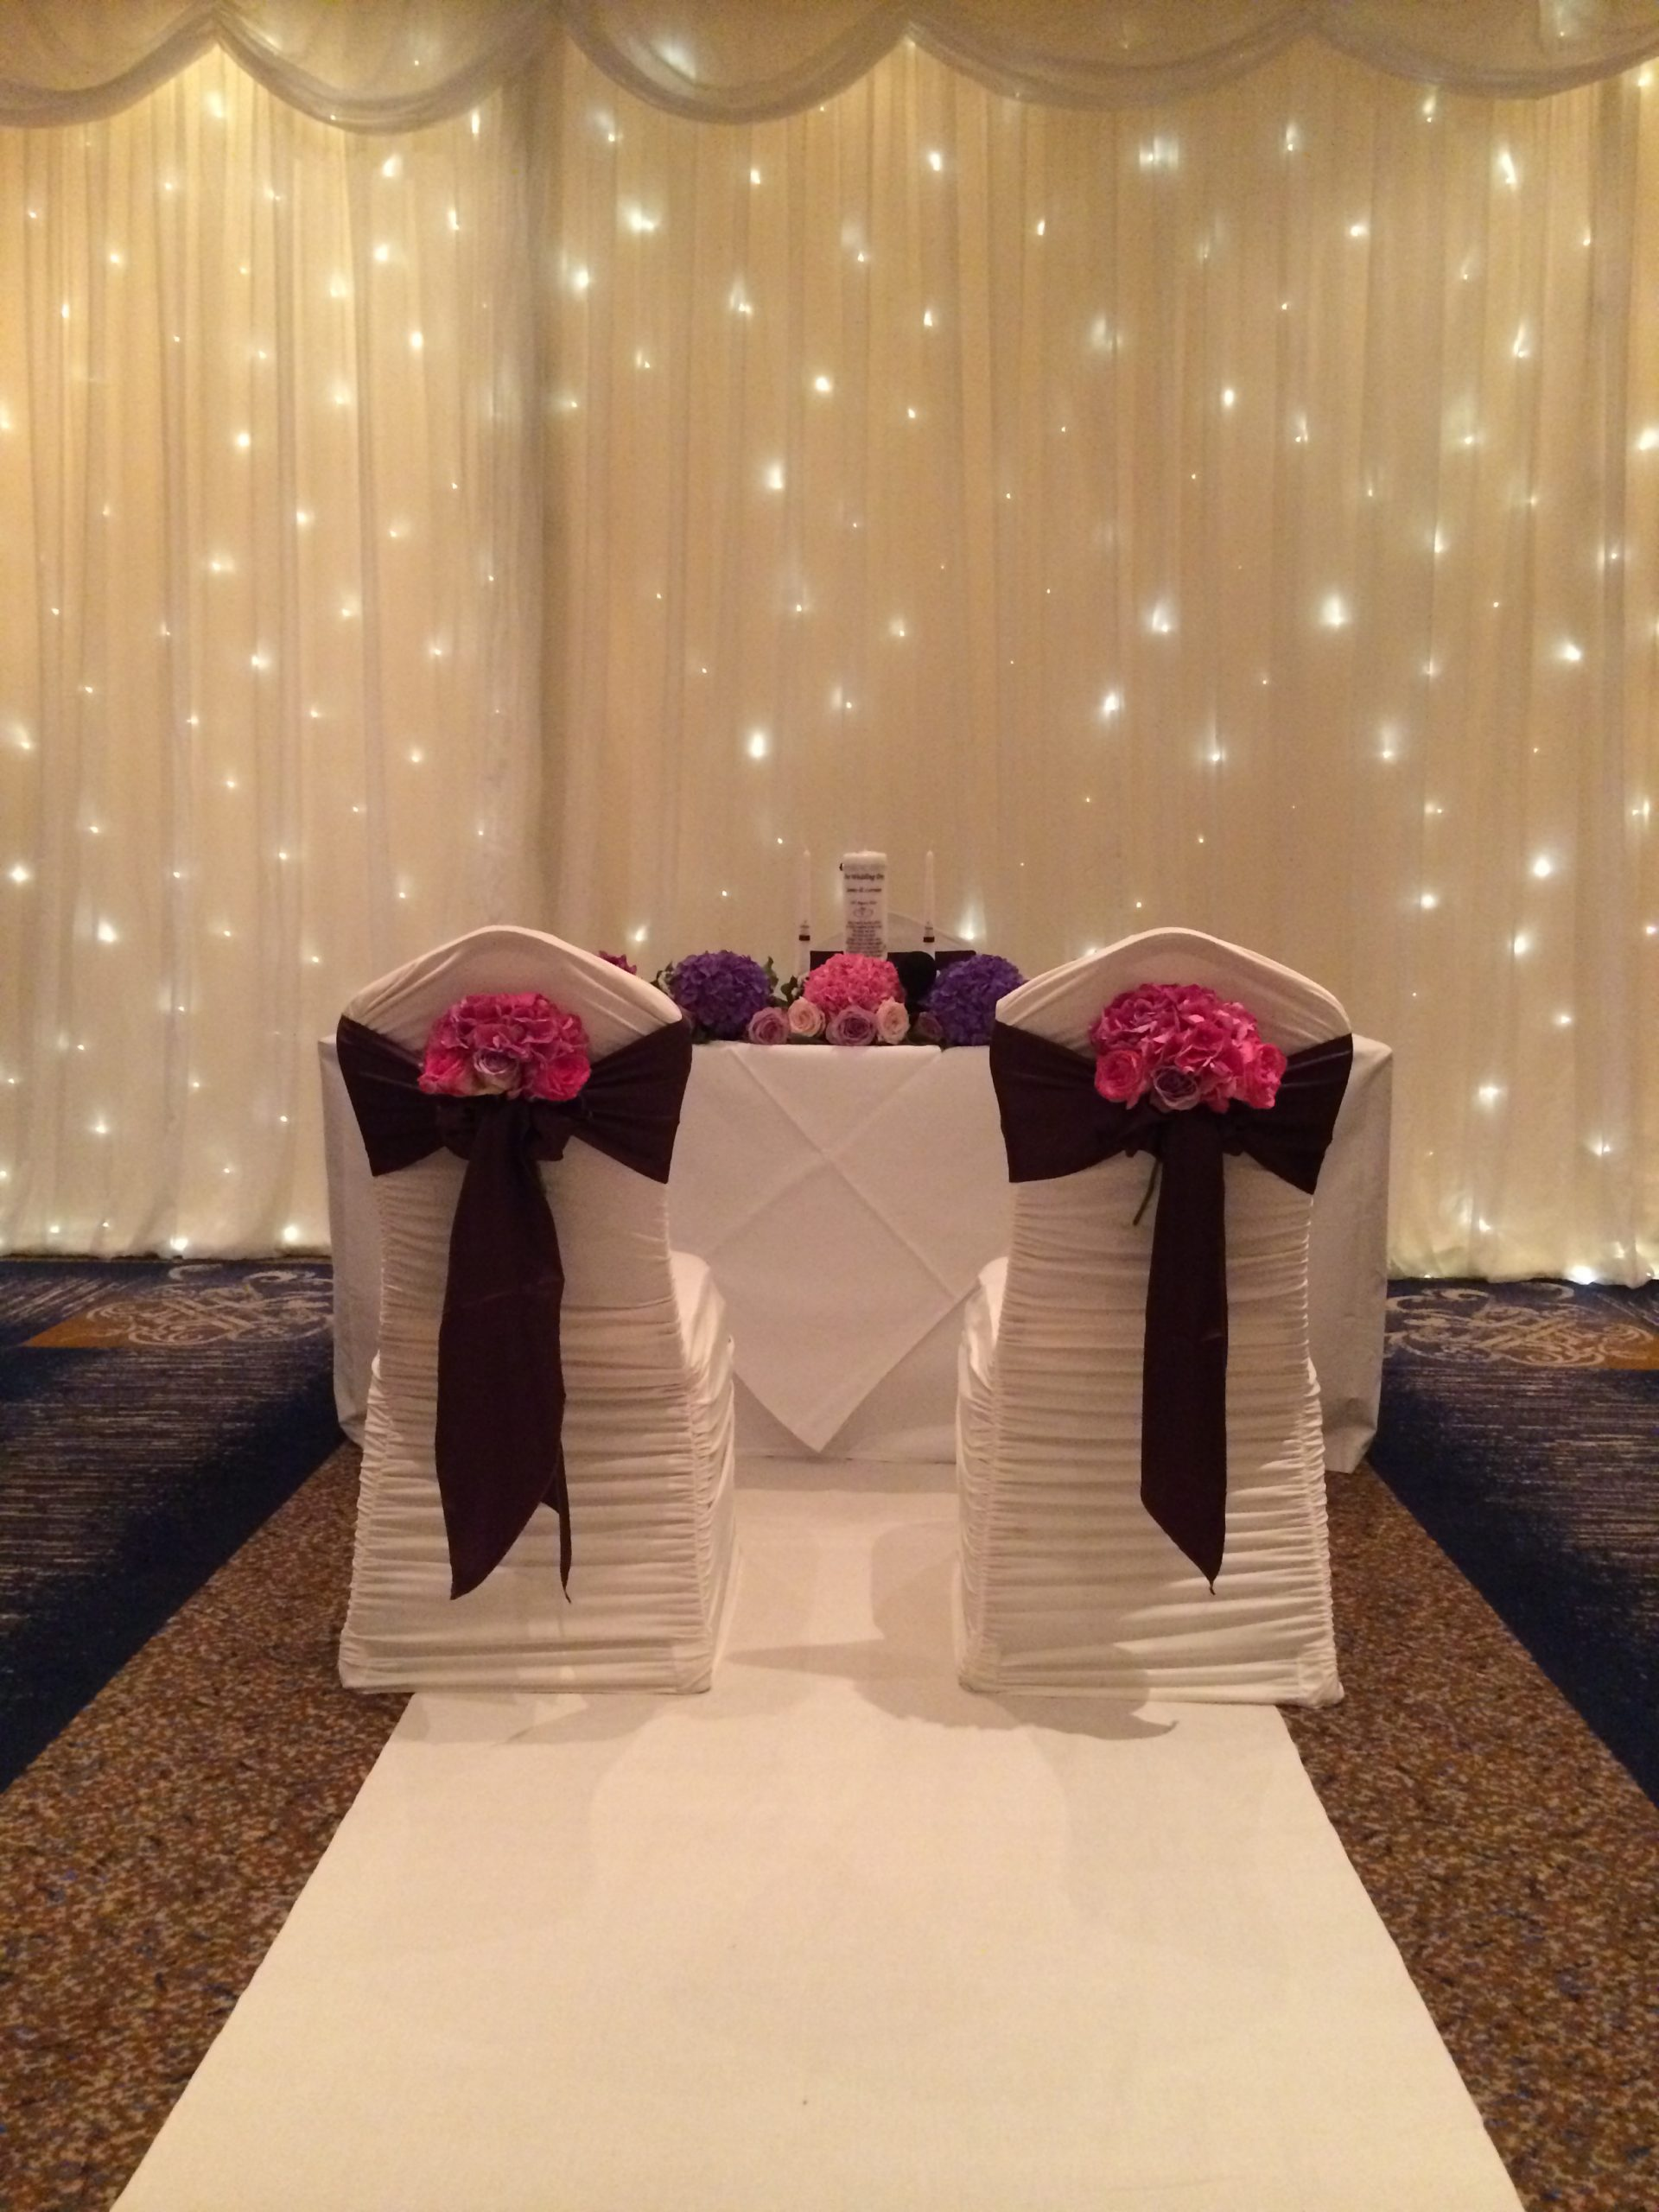 Civil ceremony - fairylight backdrop, with bride and groom chairs